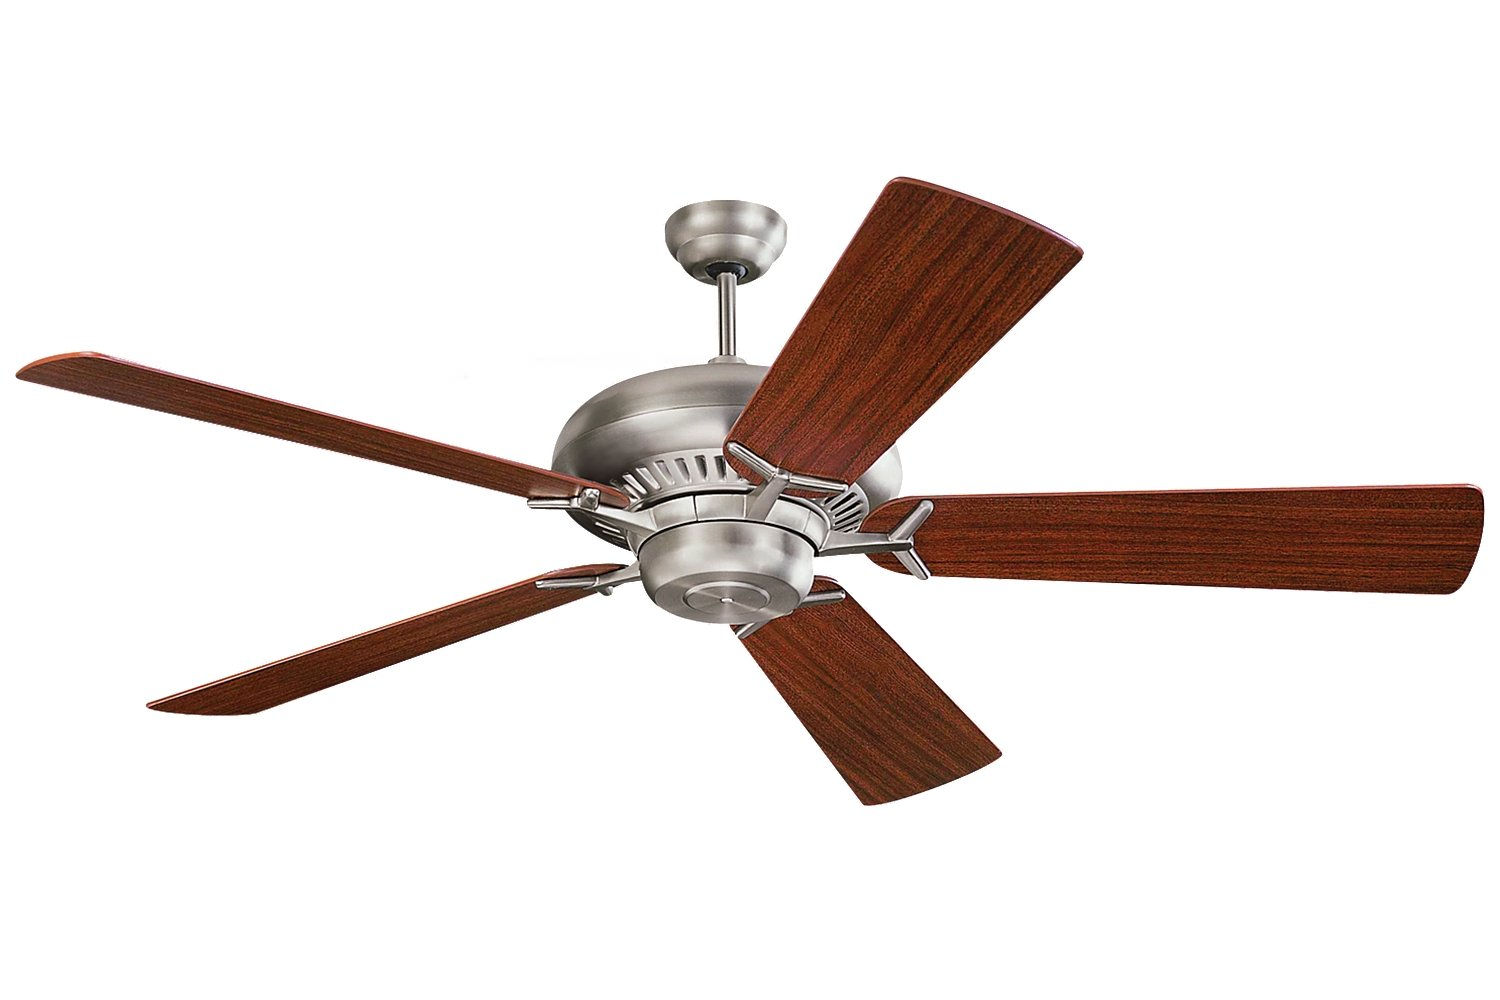 Monte carlo 5gp60wh grand prix 60 ceiling fan white amazon aloadofball Image collections